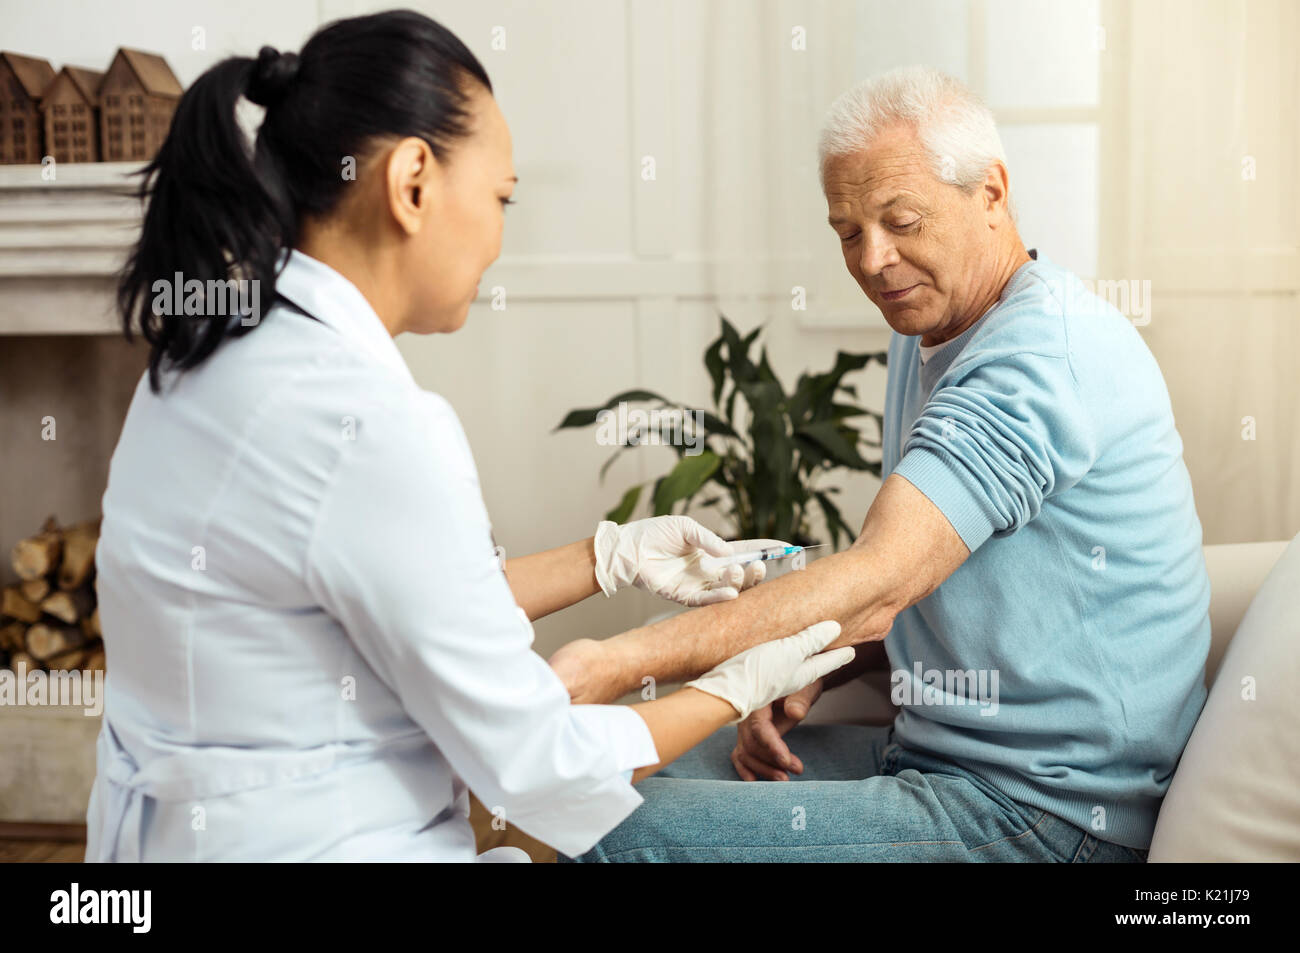 Skillful medical worker doing an injection - Stock Image